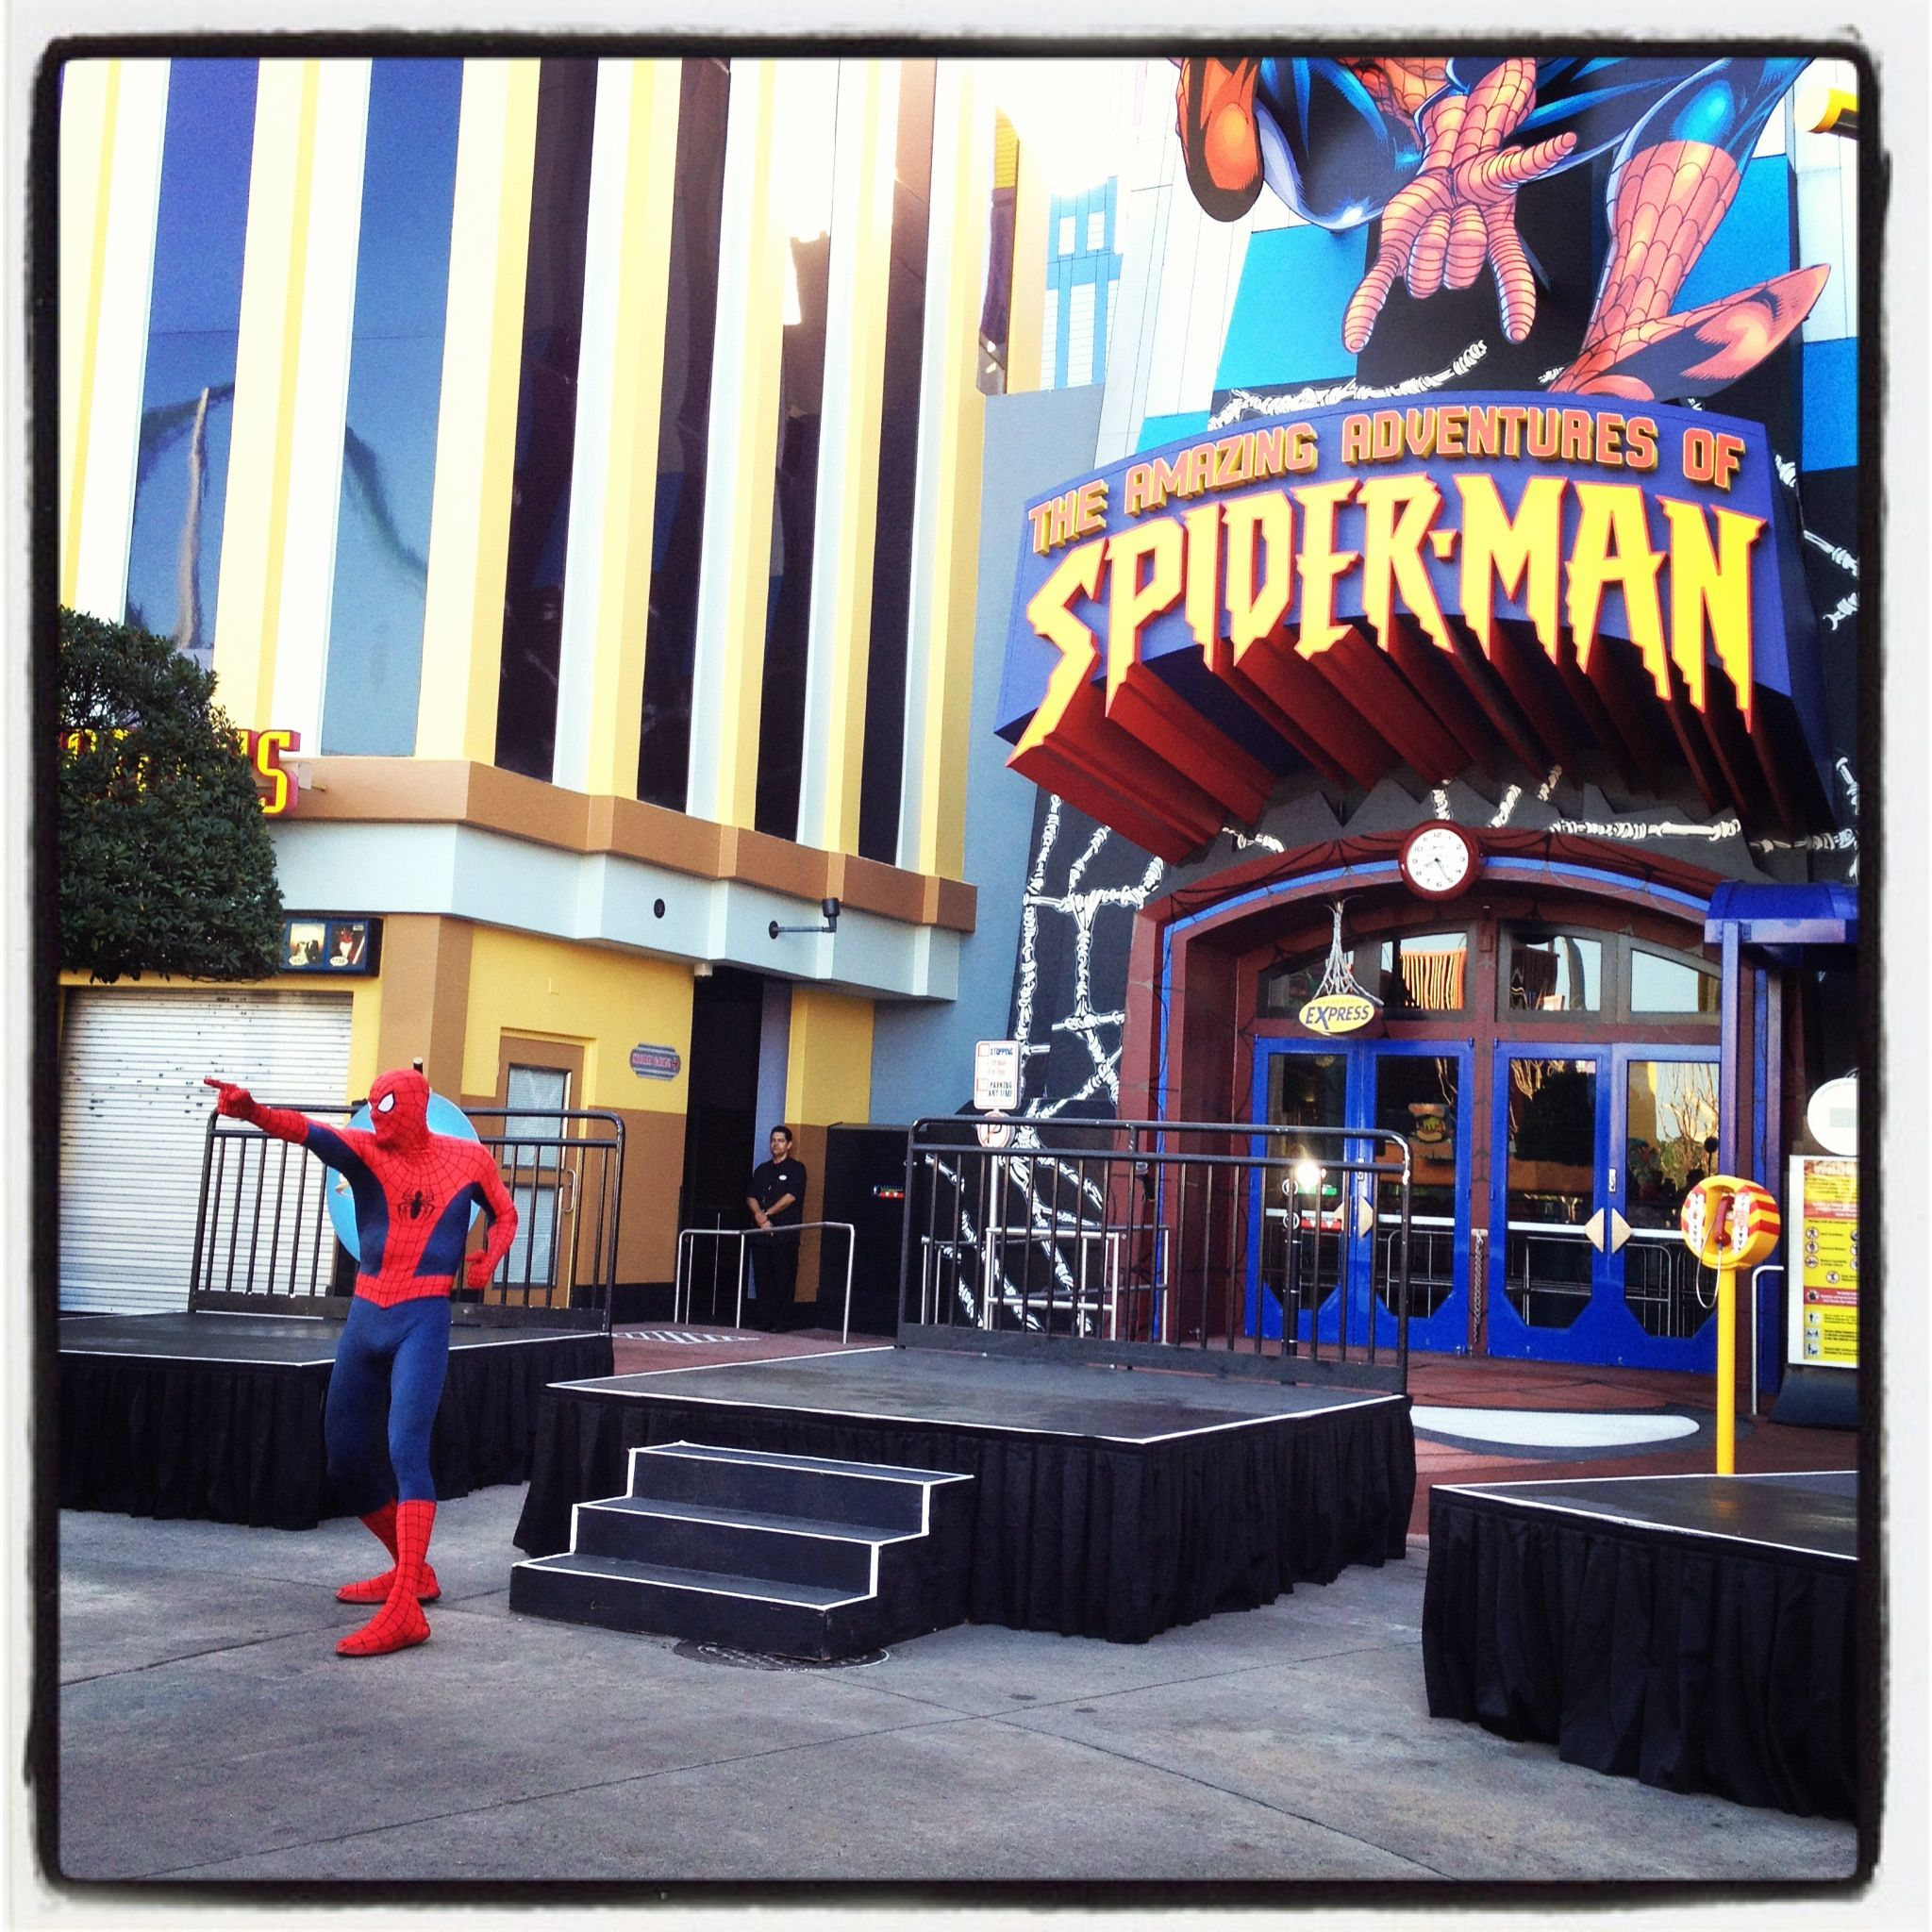 Islands of Adventure: Reopening Ceremony For The Spider-Man Ride